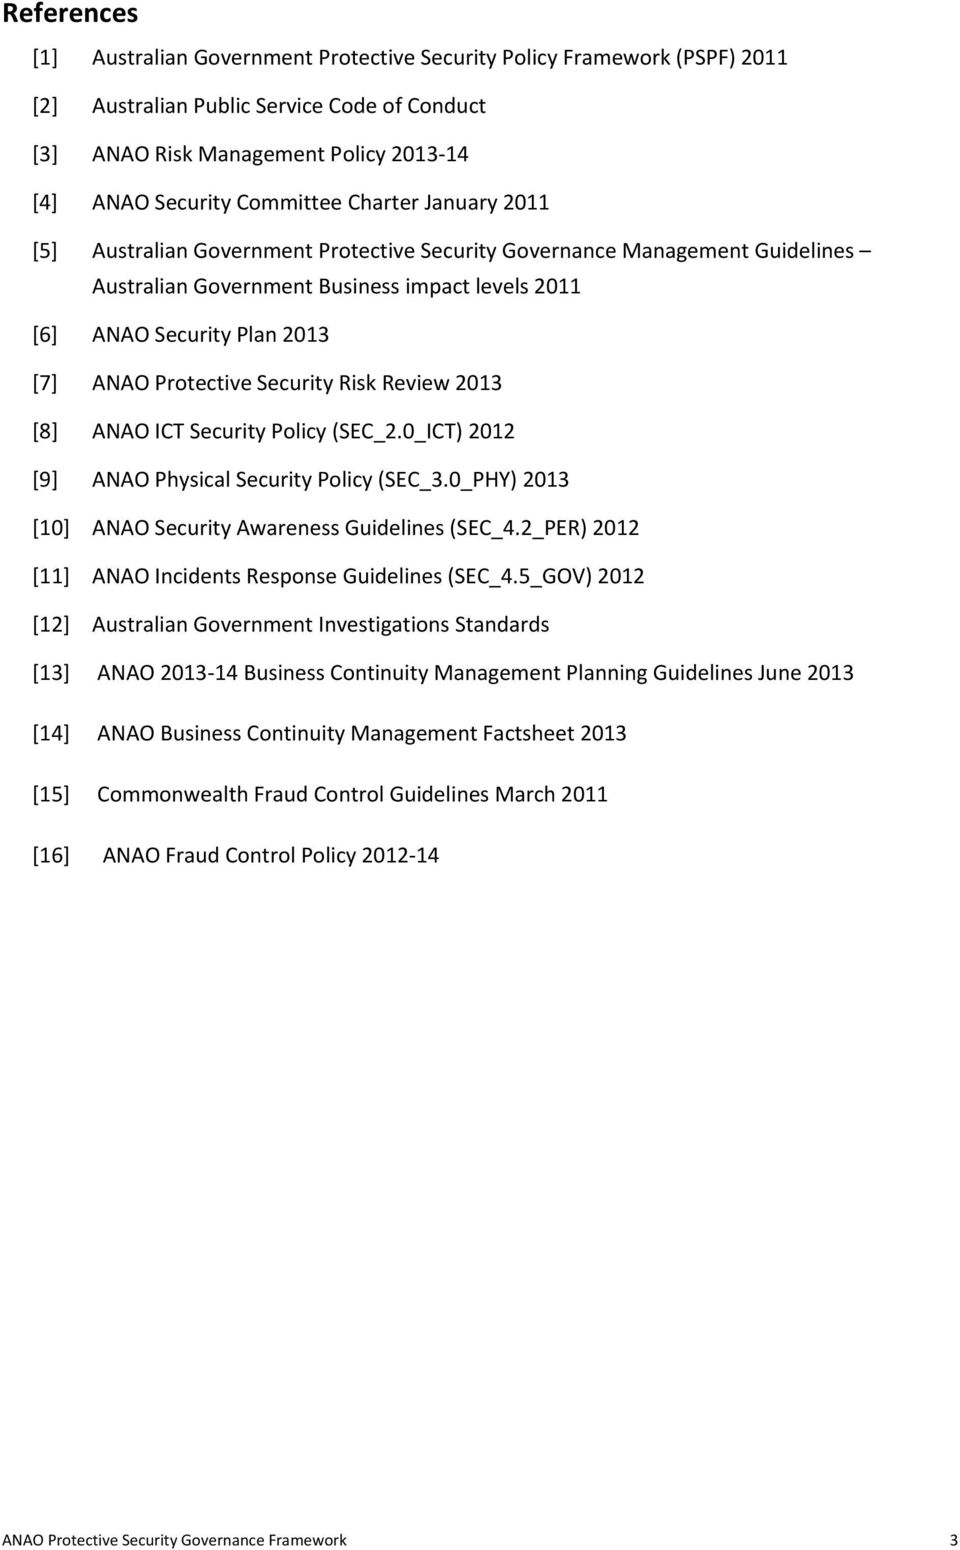 [8] ANAO ICT Security Policy (SEC_2.0_ICT) 2012 [9] ANAO Physical Security Policy (SEC_3.0_PHY) 2013 [10] ANAO Security Awareness Guidelines (SEC_4.